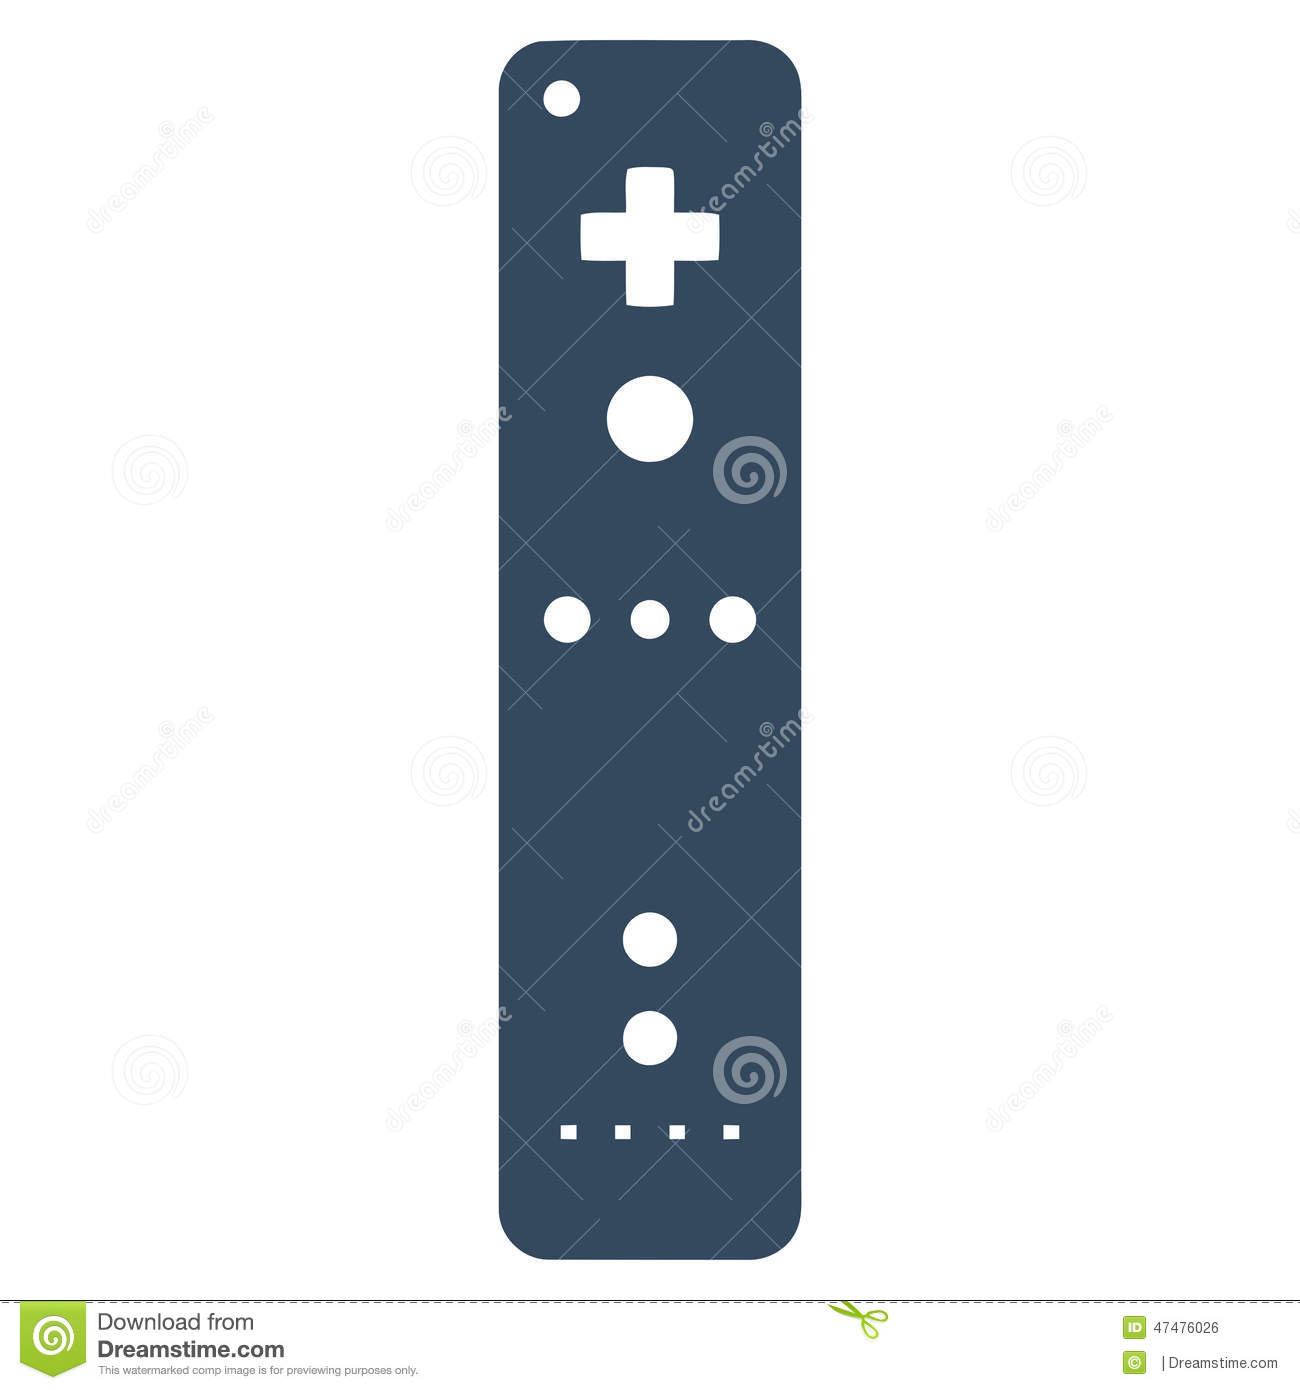 how to connect your wii remote to your wii u